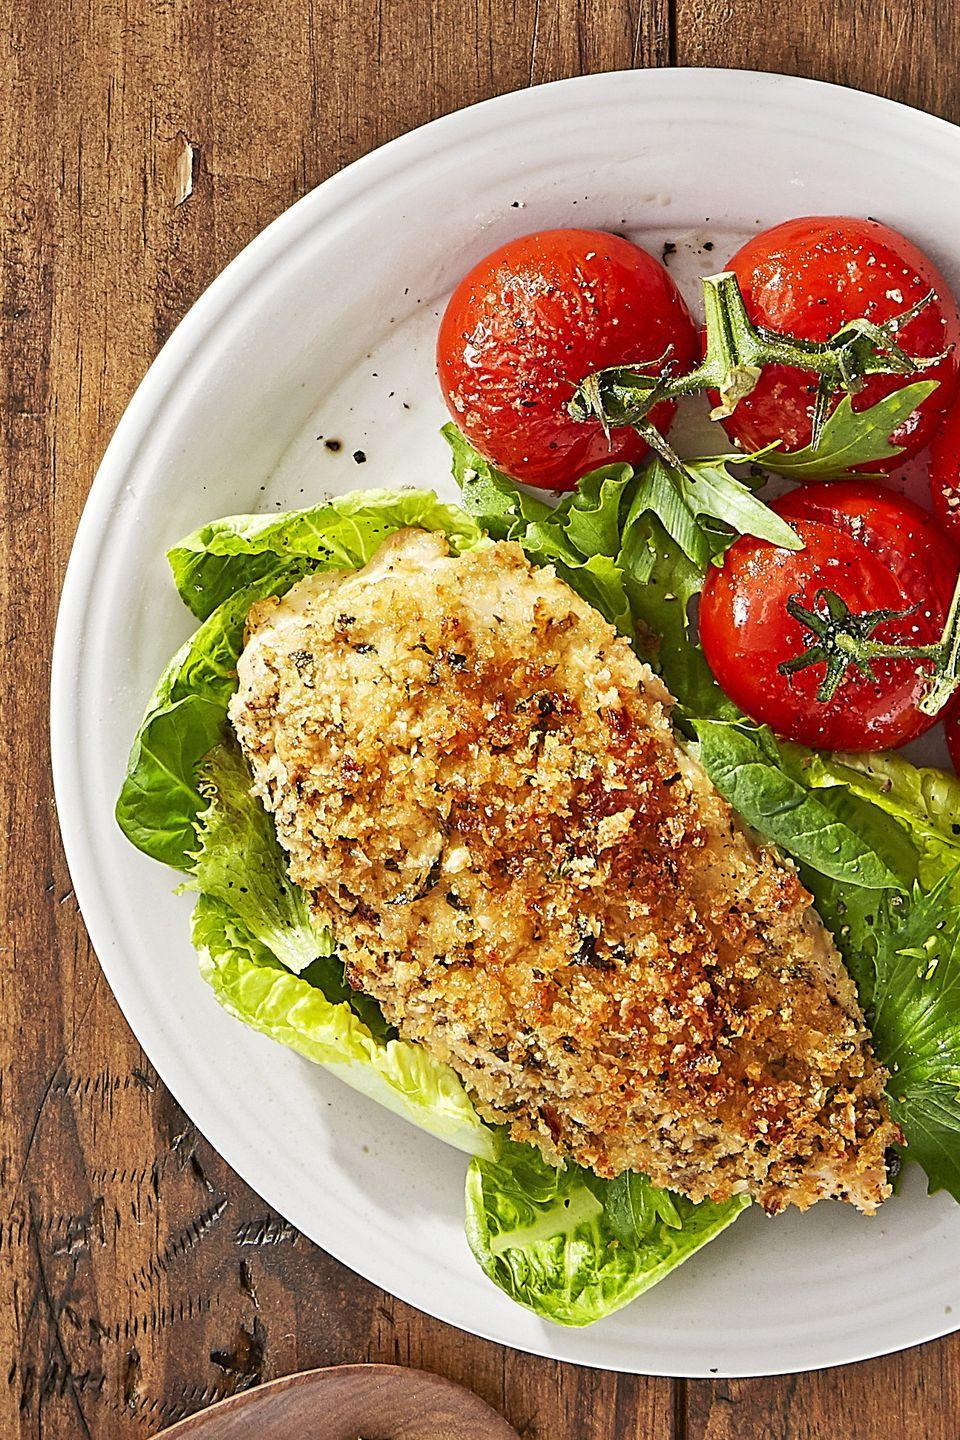 "<p>Parmesan and panko bring the crunch, while bursting Campari tomatoes bring the juice.</p><p><a href=""https://www.countryliving.com/food-drinks/recipes/a44271/roasted-parmesan-chicken-tomatoes-recipe/"" rel=""nofollow noopener"" target=""_blank"" data-ylk=""slk:Get the recipe."" class=""link rapid-noclick-resp""><strong>Get the recipe.</strong></a></p>"